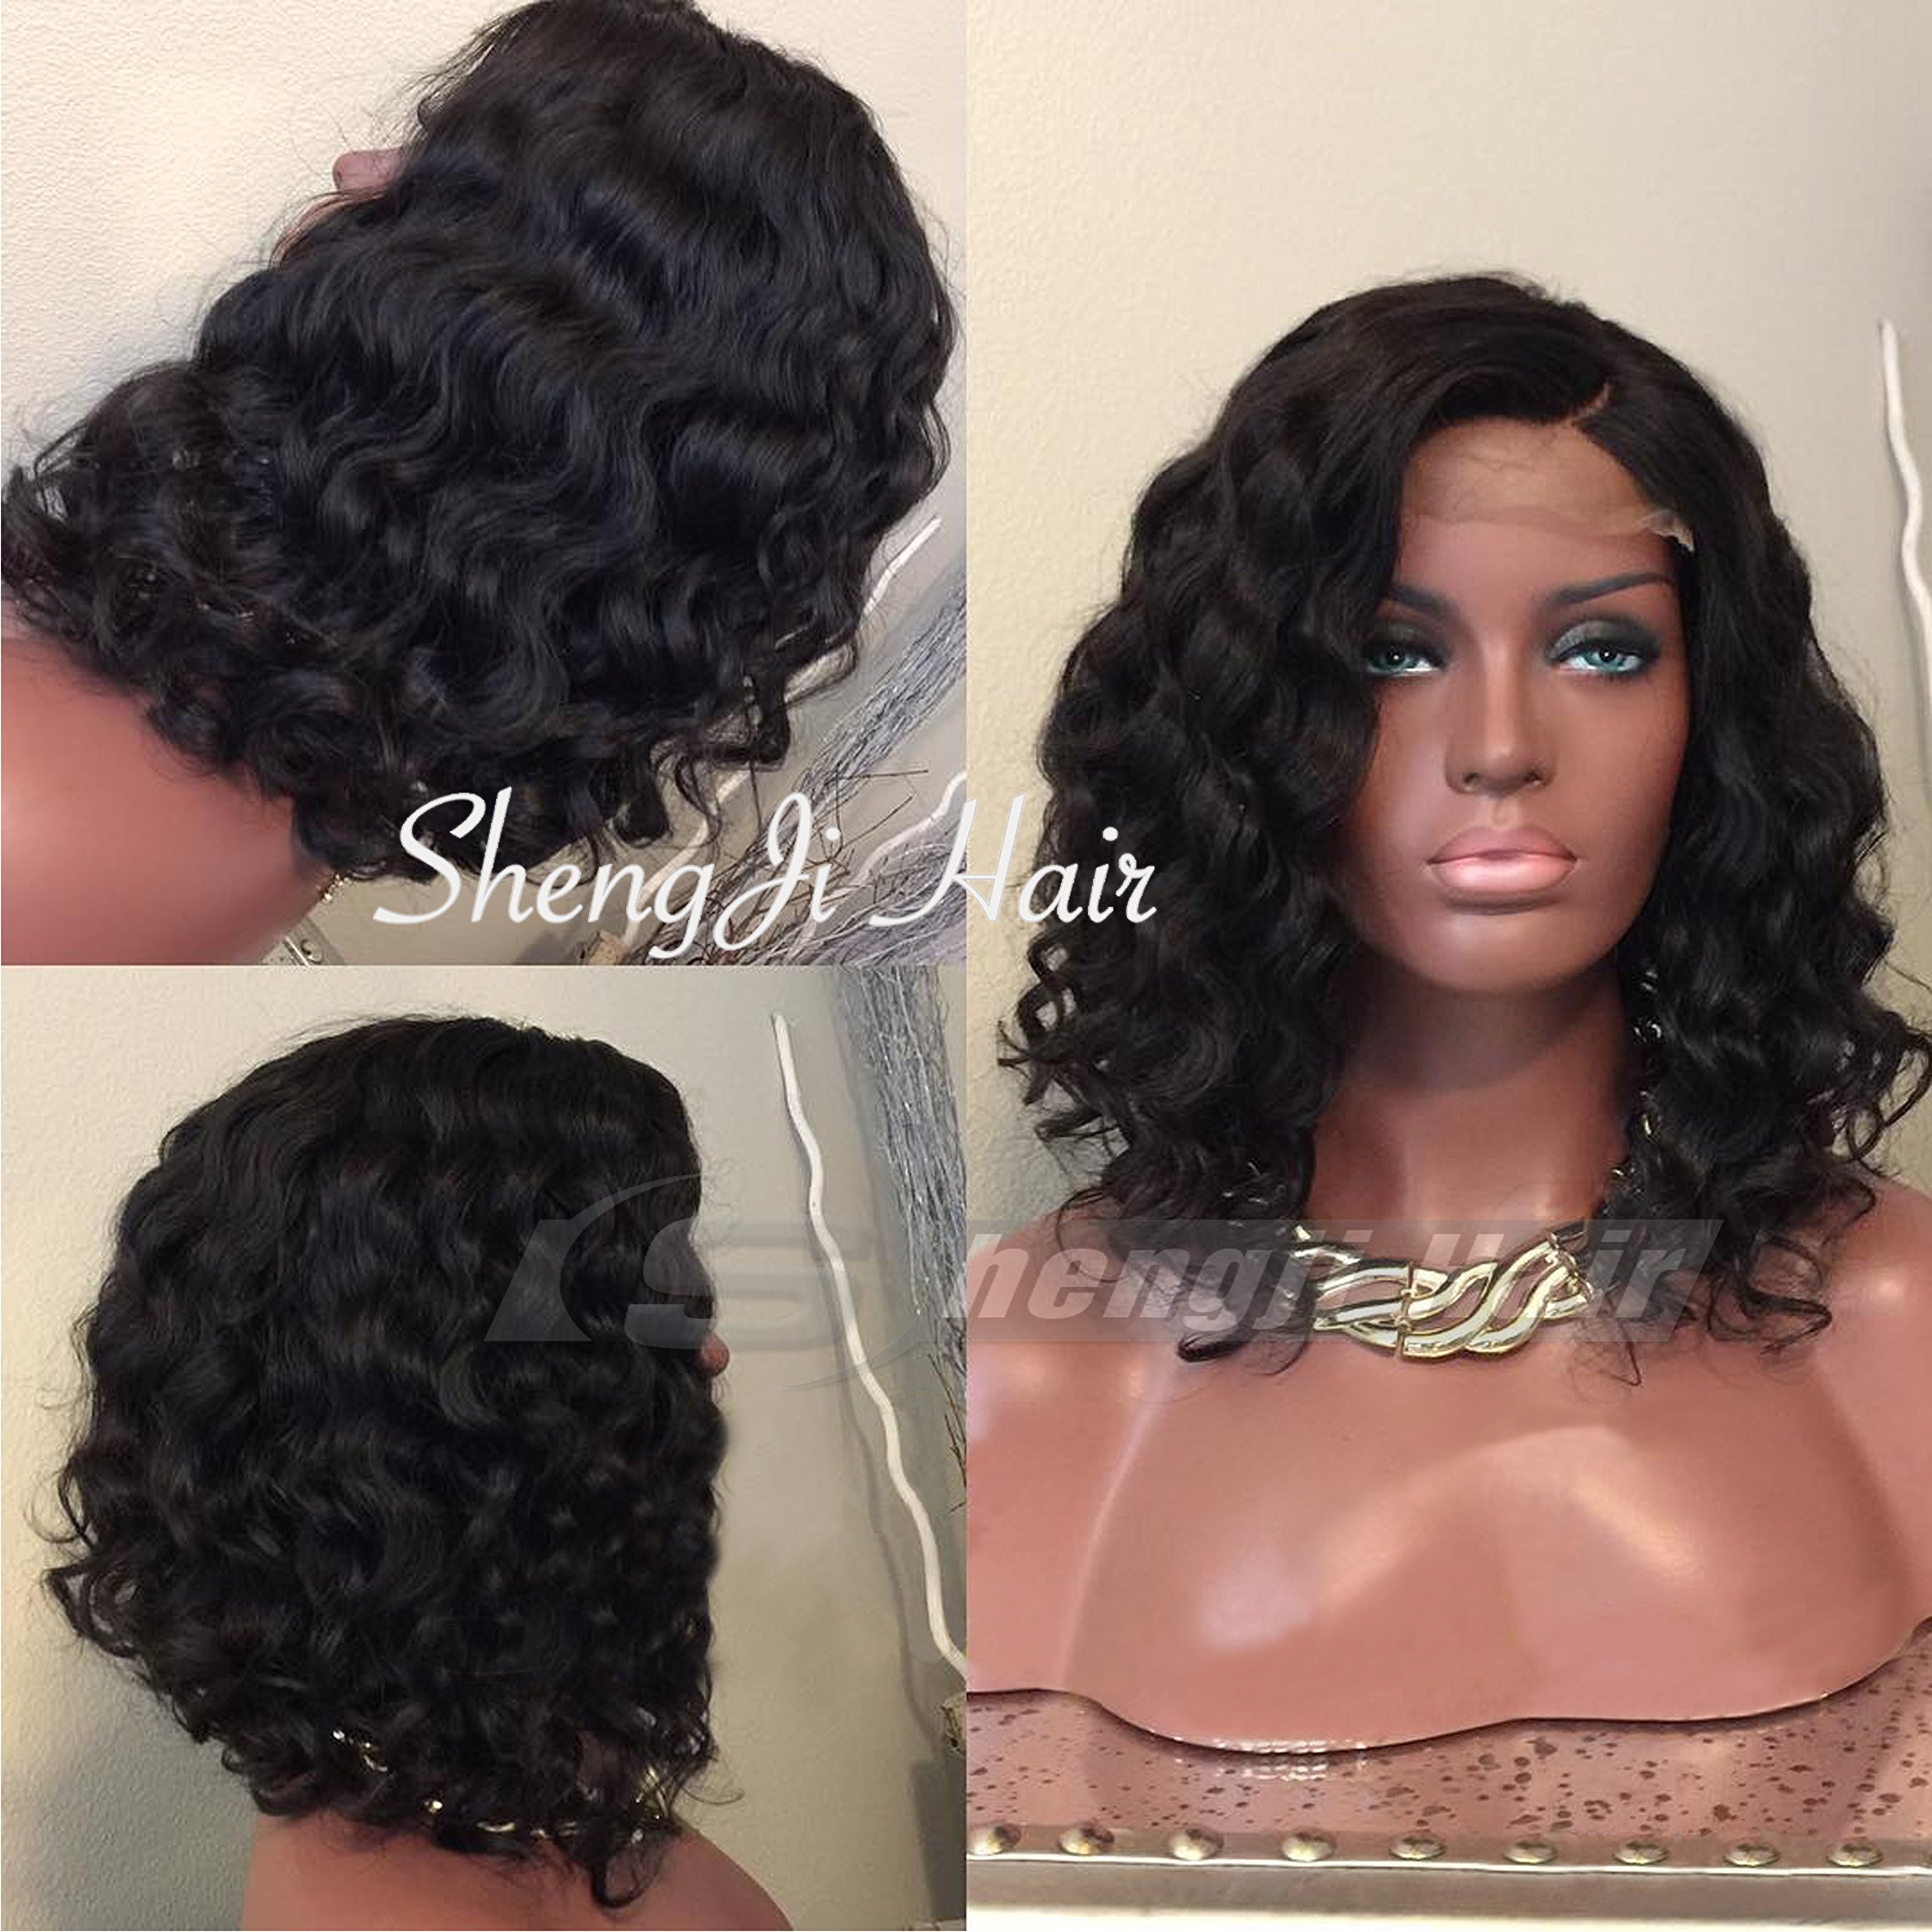 Full Lace Brazilian Virgin Hair Wig Short Wigs for Black Women Hair Glueless Human Hair Wigs with Baby Hair (12 inch with 150 density,Full Lace Wig)